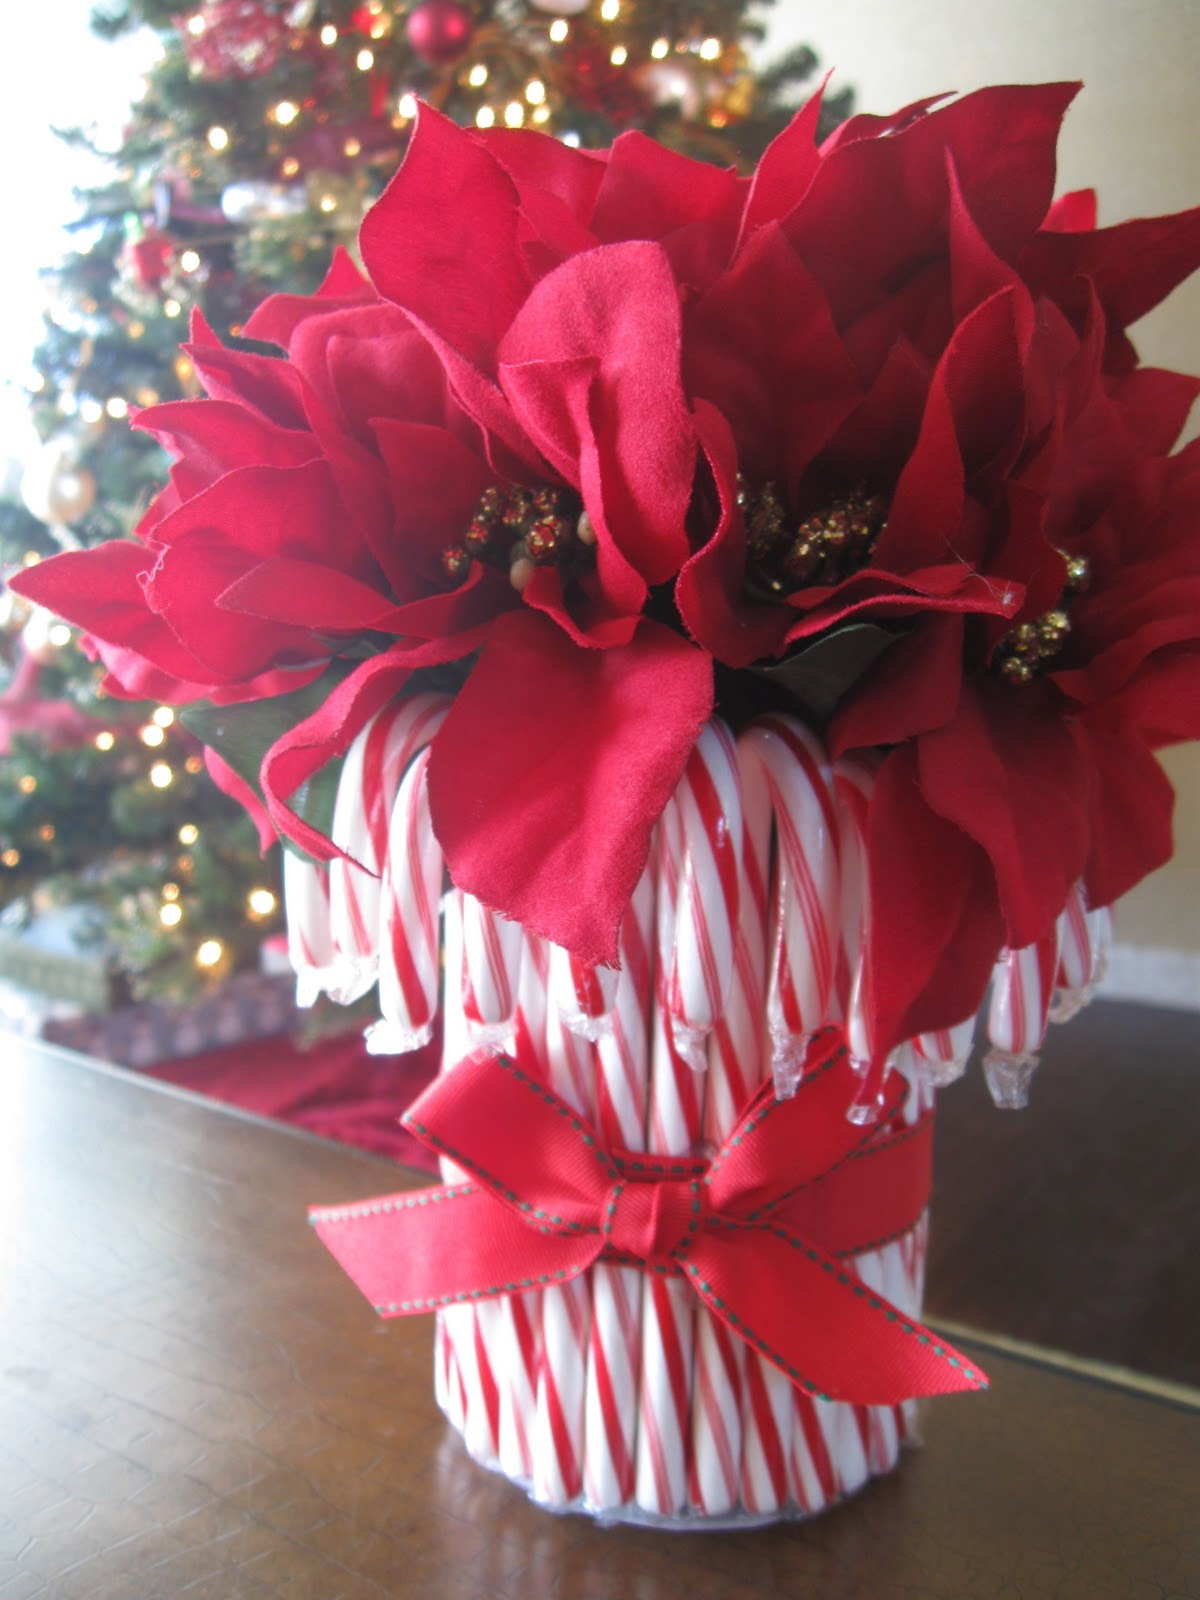 Candy cane vase candy cane vase vase ideas table centerpiece diy candy cane vase candy cane vase vase ideas table centerpiece ideas heart reviewsmspy